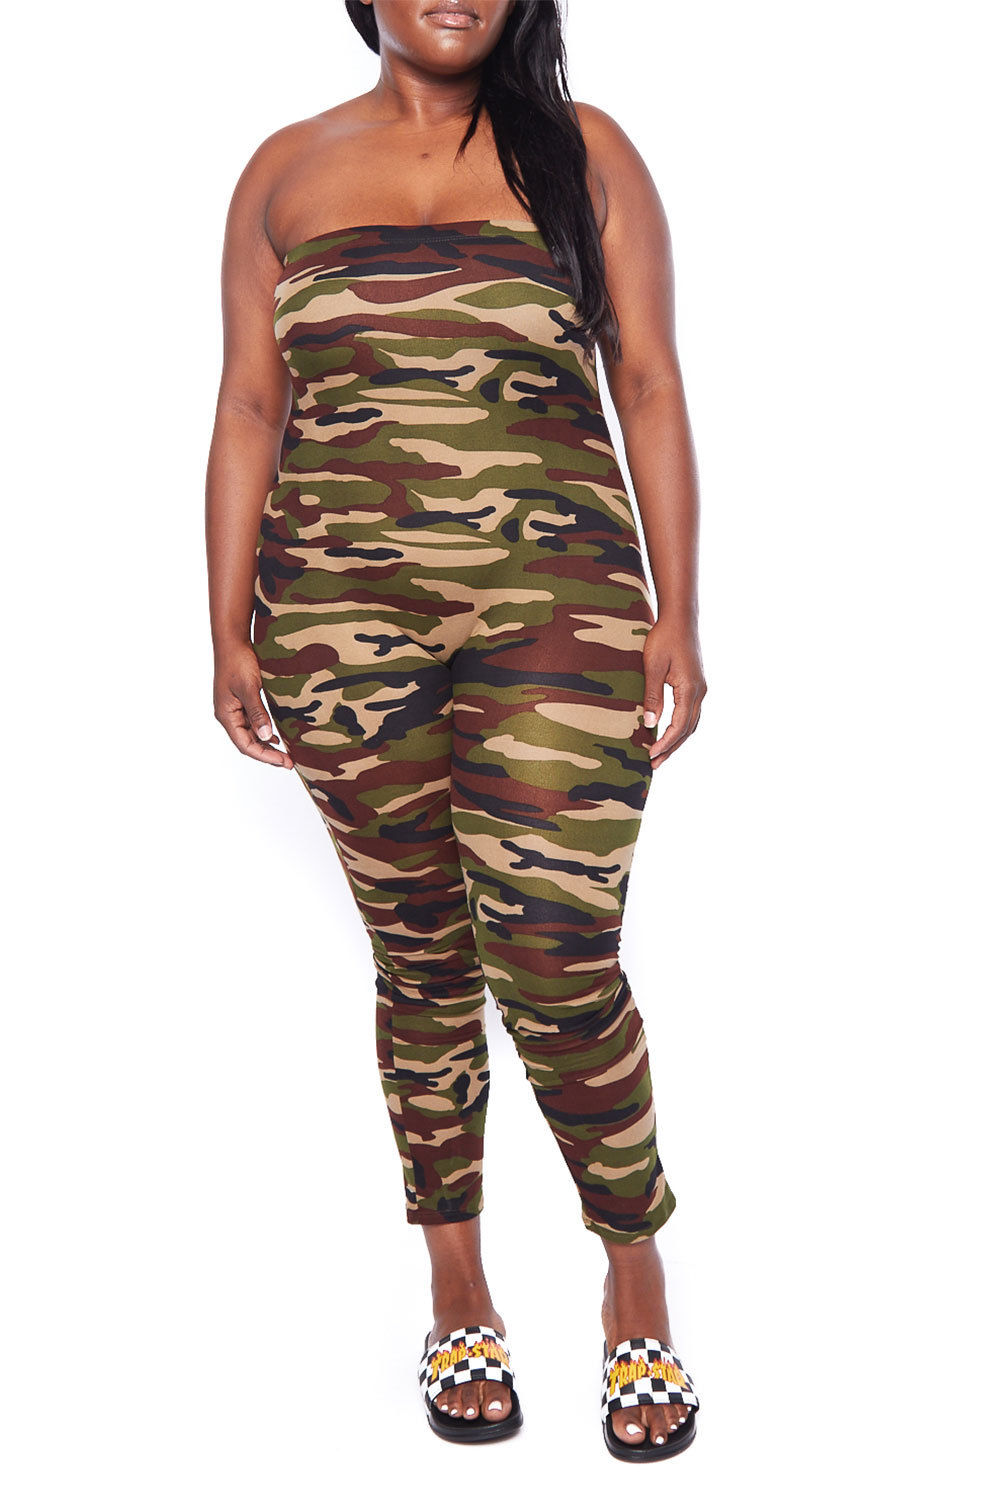 7d0169df10b Womens Plus Size Camouflage One-Piece Pull On Casual Strapless Tube Jumpsuit  1741EX-XL-Camo - Walmart.com